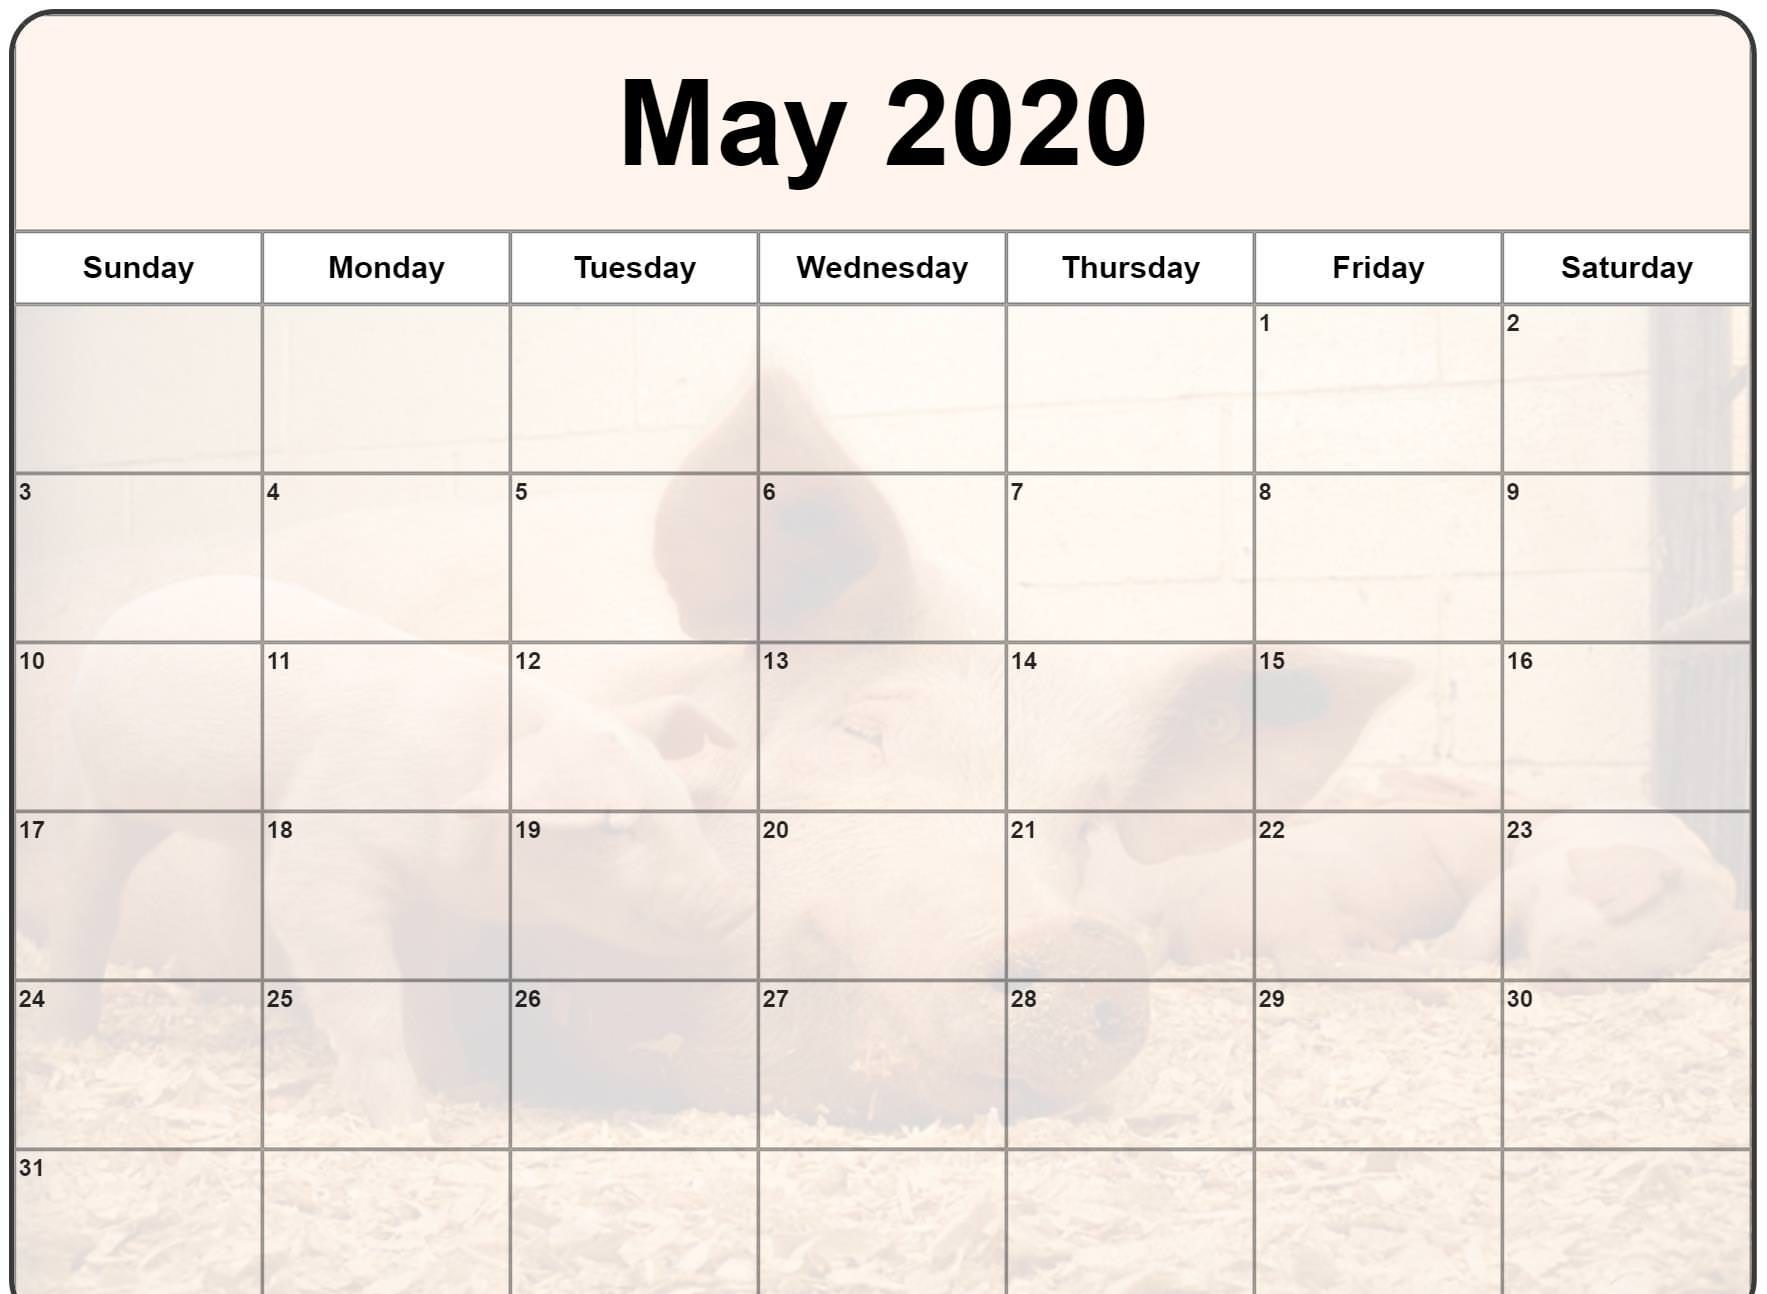 Cute May 2020 Calendar Floral Wall Calendar Design May 2020 1767x1294